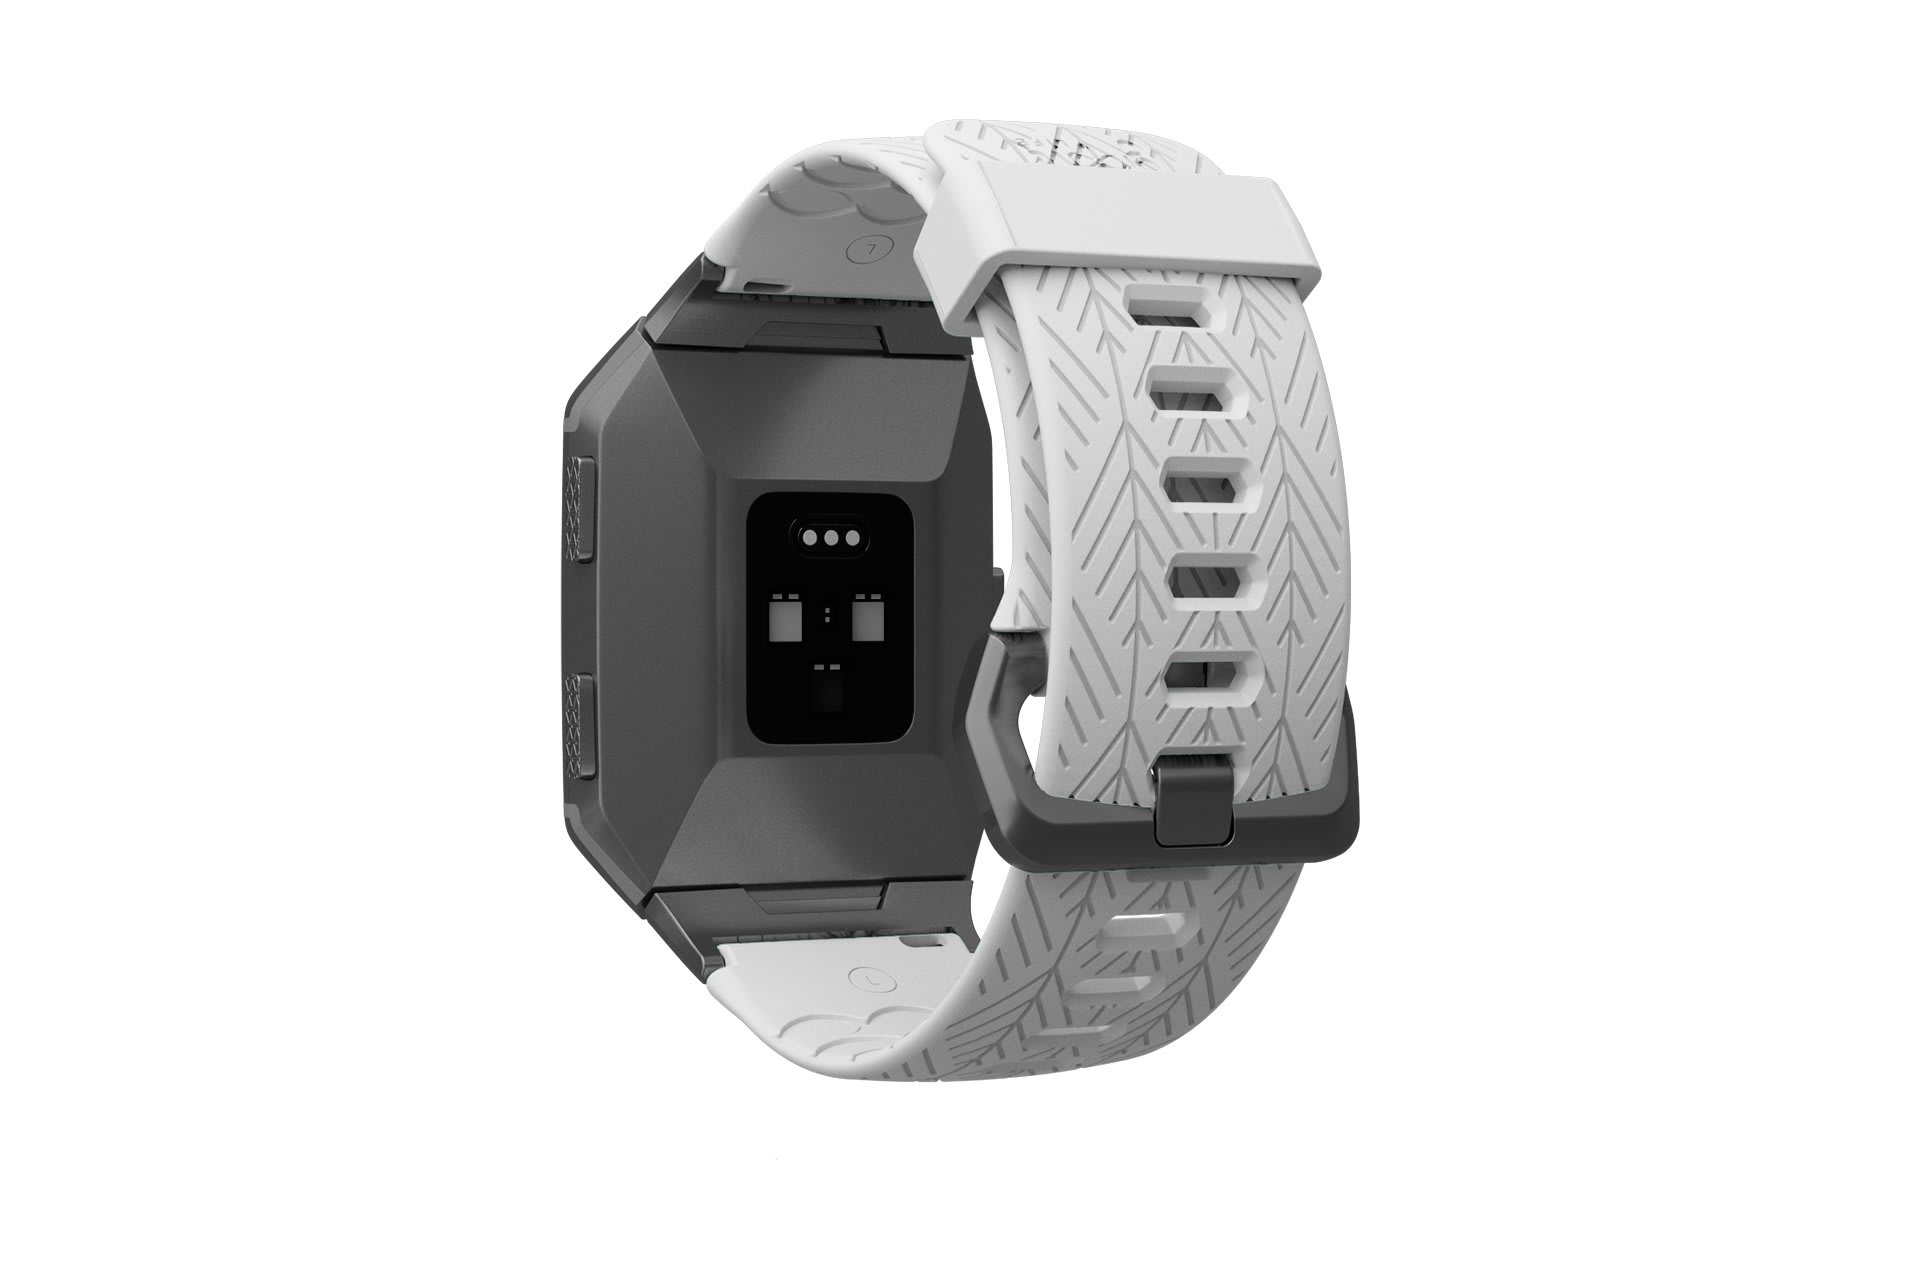 Ionic Dimension Arrows White   fitbit watch band with silver hardware viewed from top down